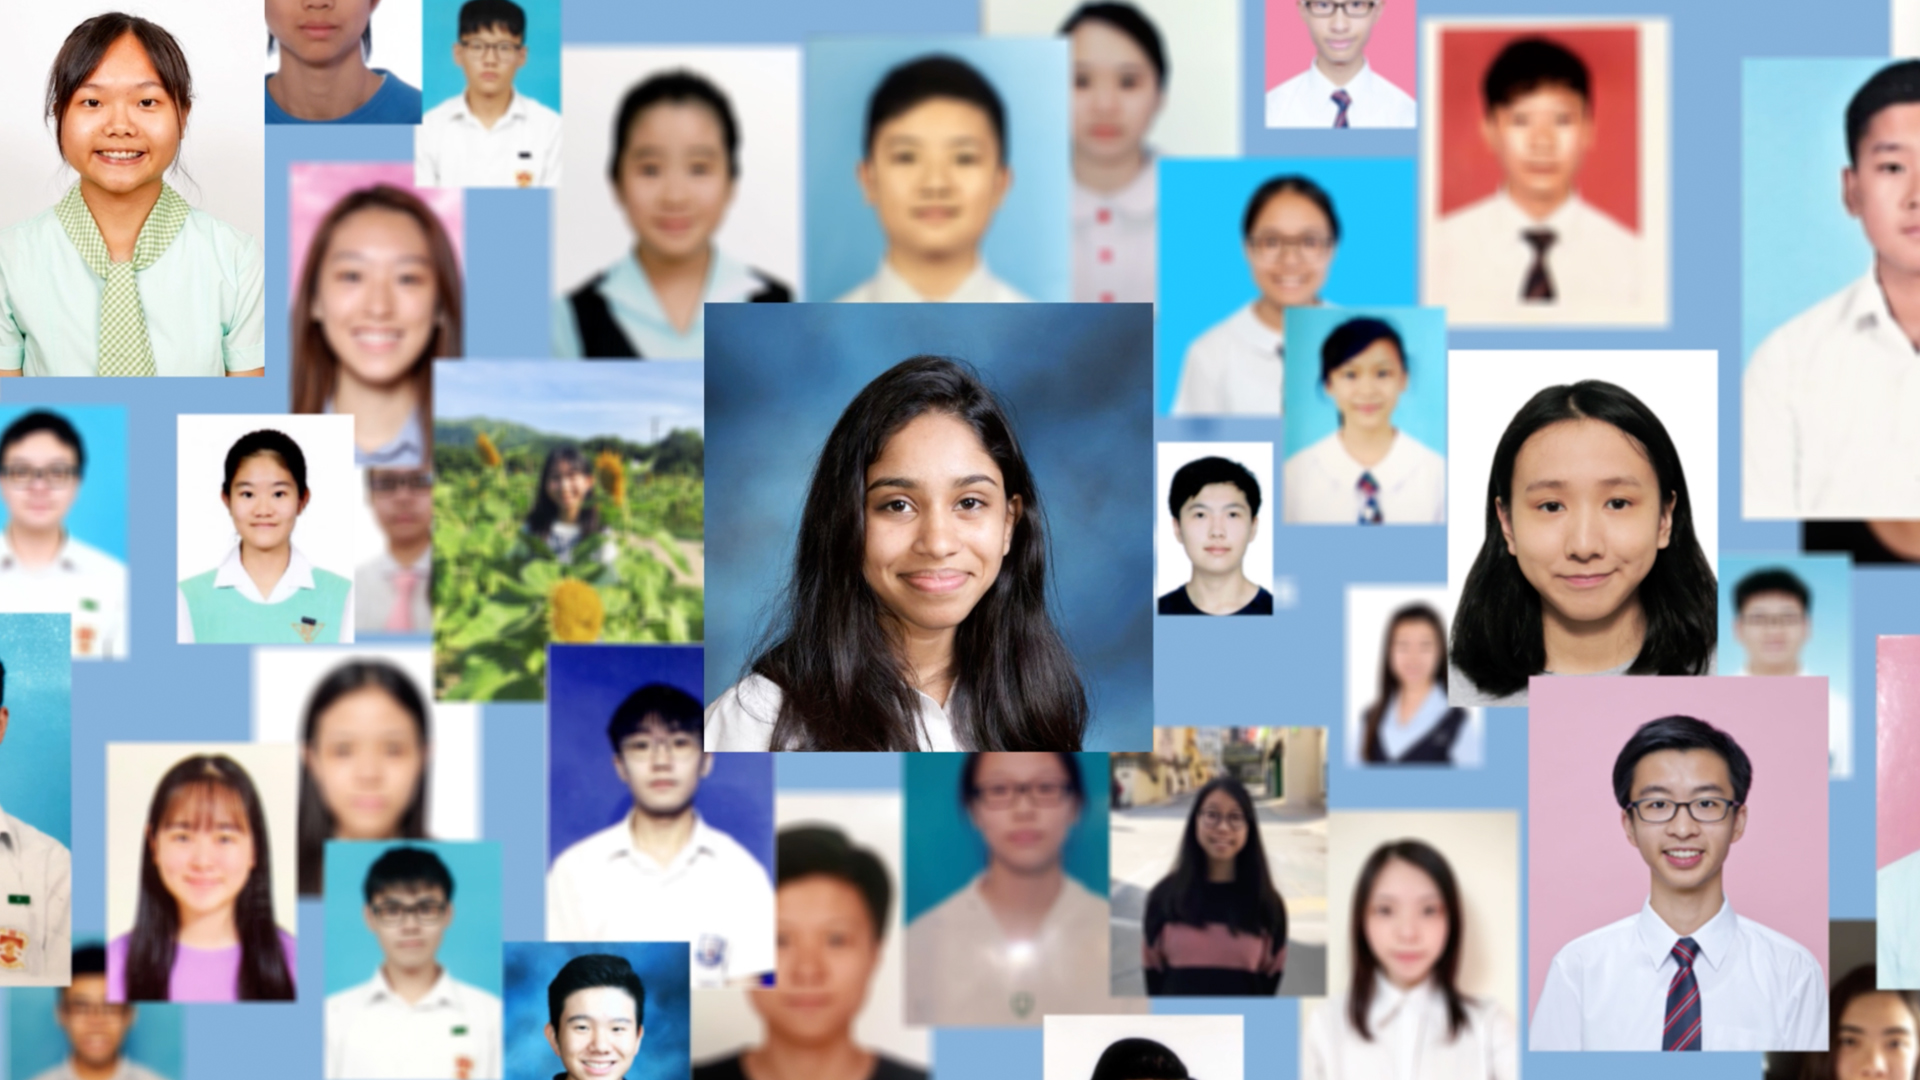 CUHK OAL Summer Institute 2020 Welcome Video